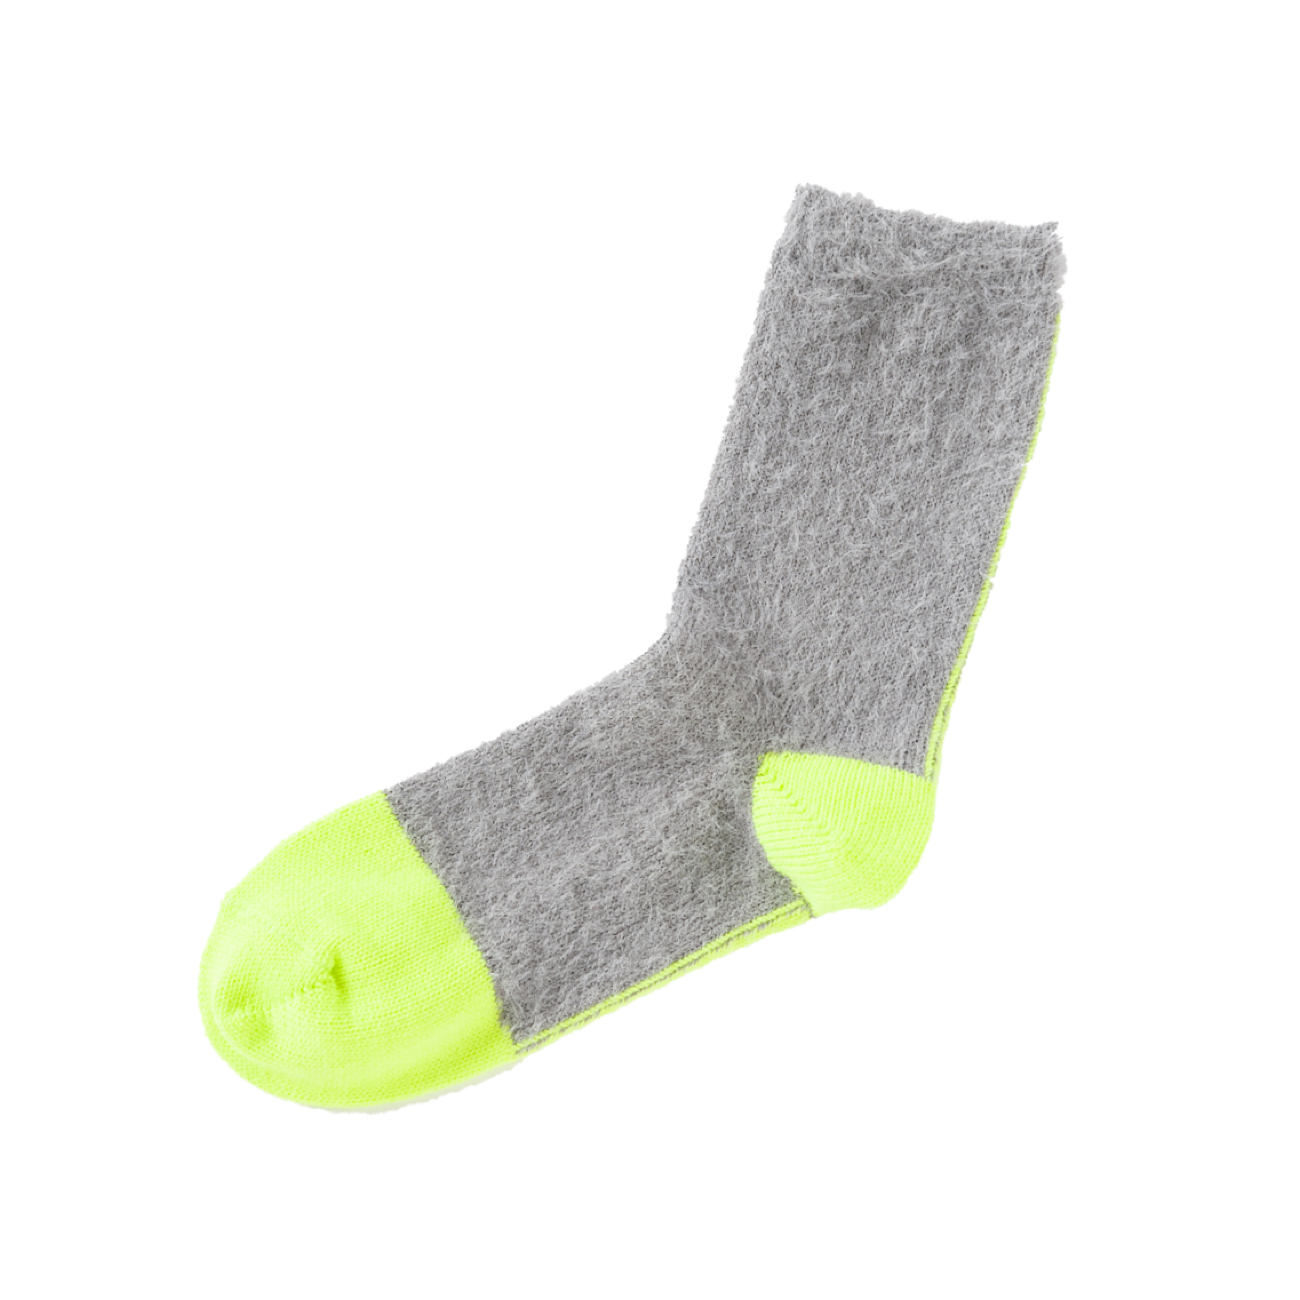 <img class='new_mark_img1' src='https://img.shop-pro.jp/img/new/icons14.gif' style='border:none;display:inline;margin:0px;padding:0px;width:auto;' />TRICOTE/neon shaggy socks